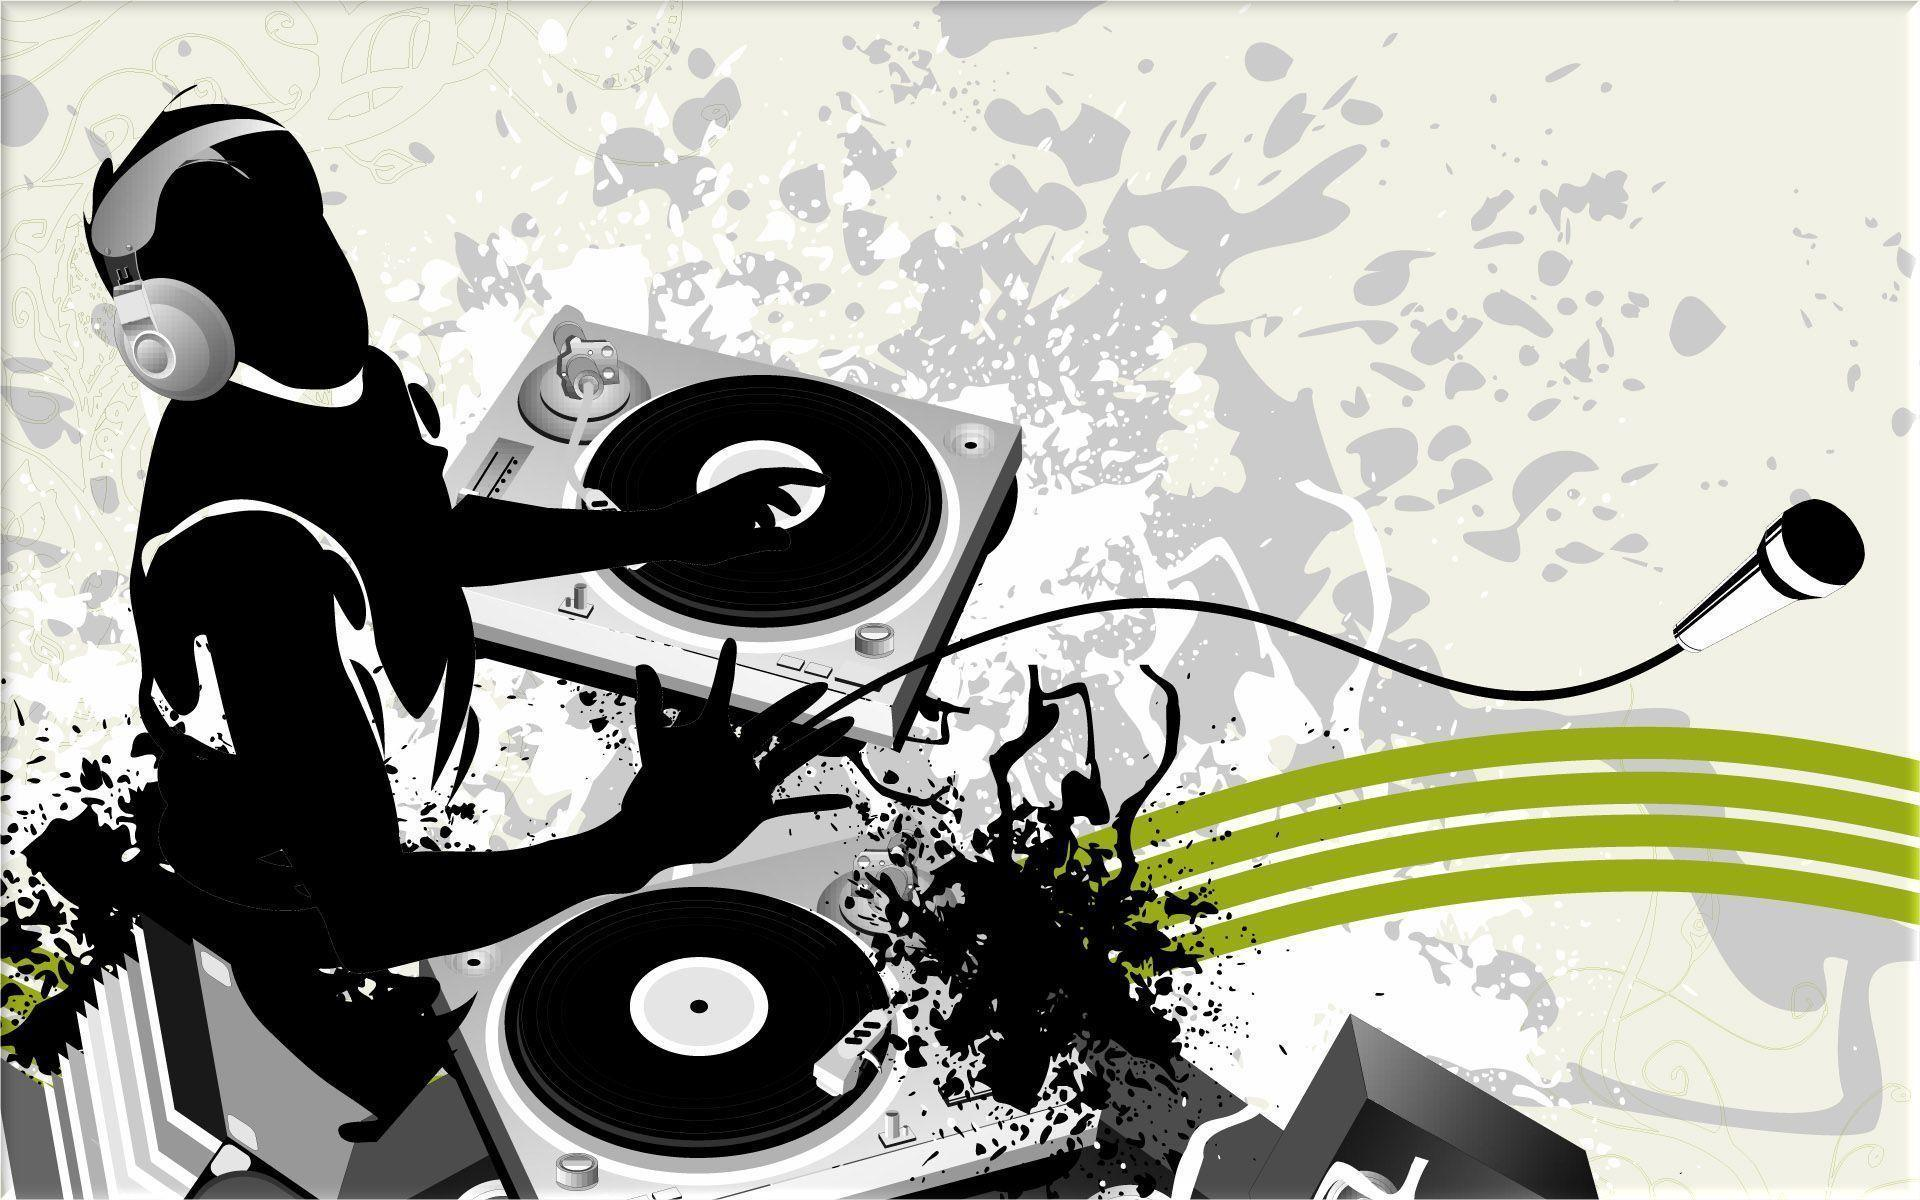 DJ Music Wallpapers The Cool DJ Wallpapers In HD Gallery Lets Dance